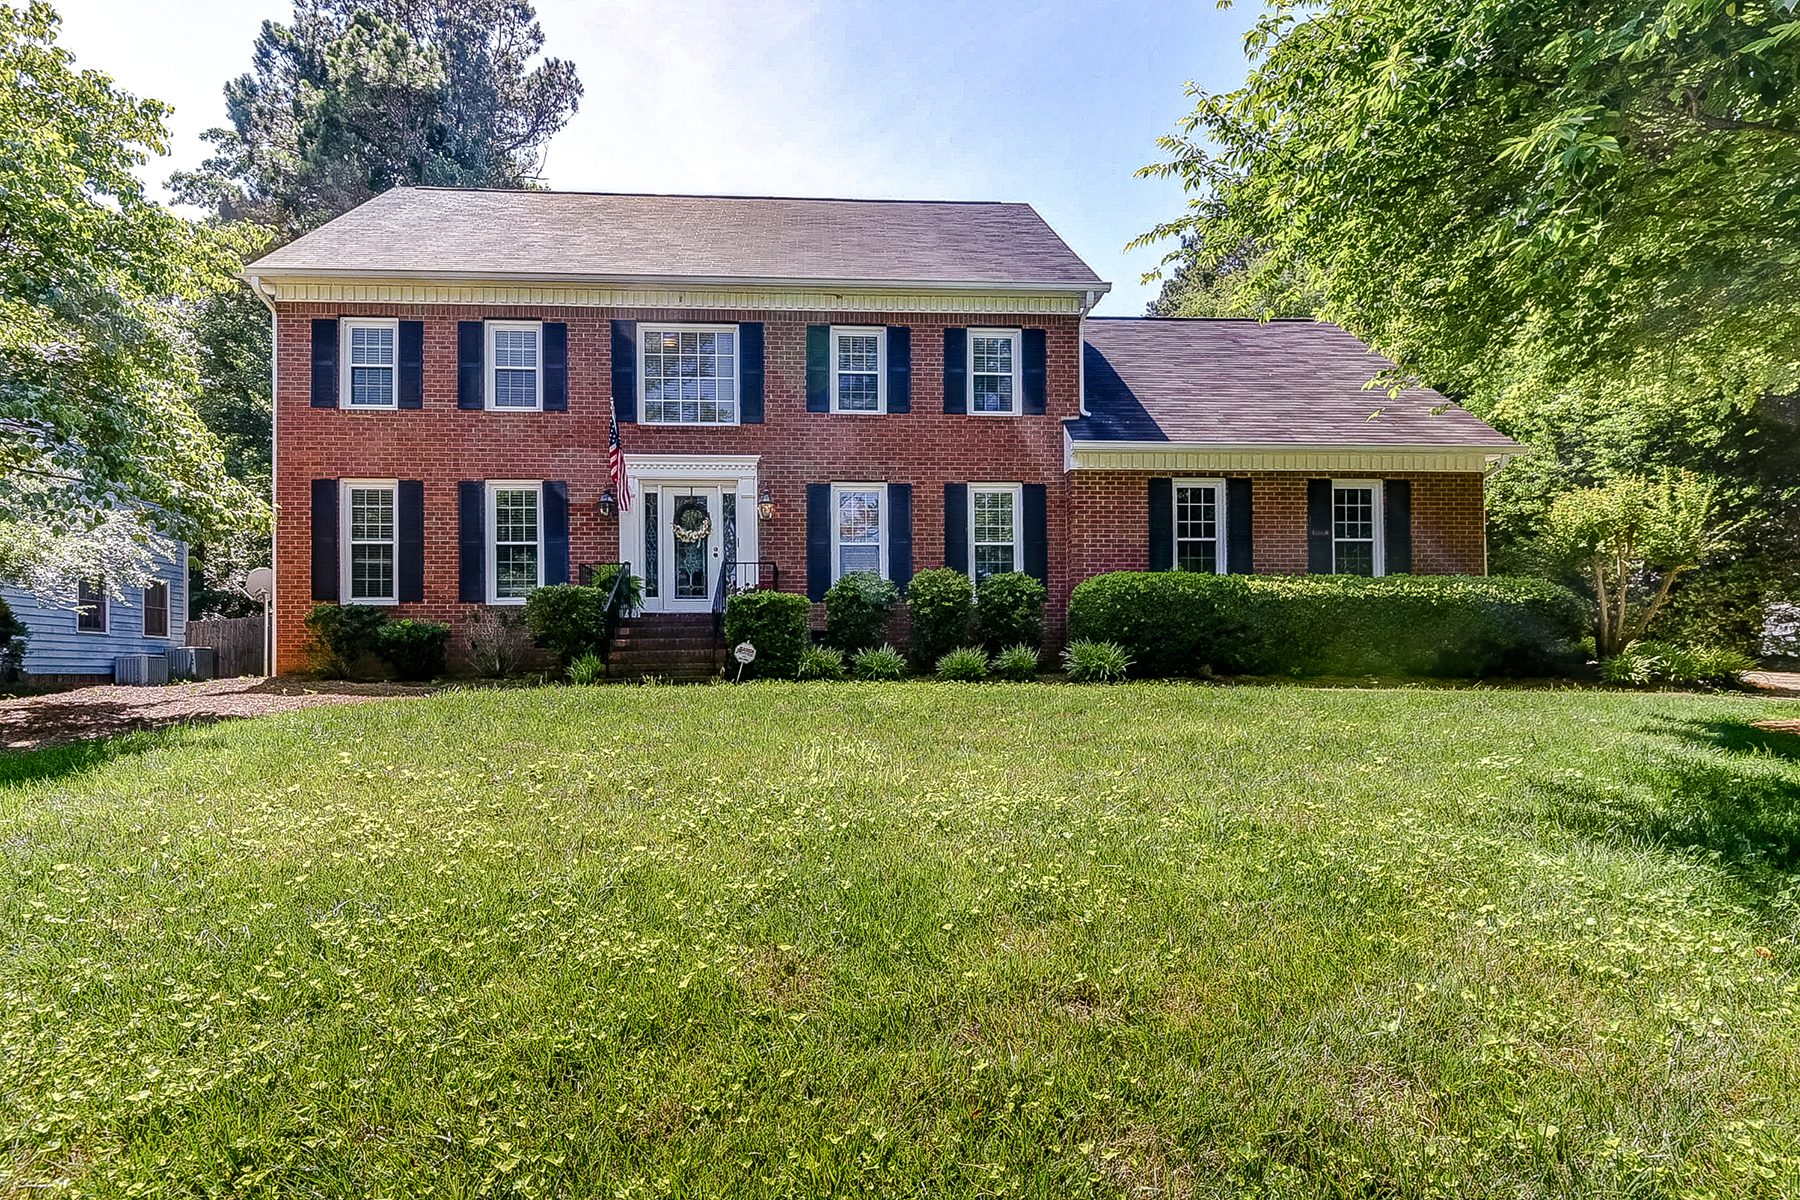 Single Family Home for Sale at Exceptional East Cobb Home 1590 Tennesee Walker Dr Roswell, Georgia 30075 United States